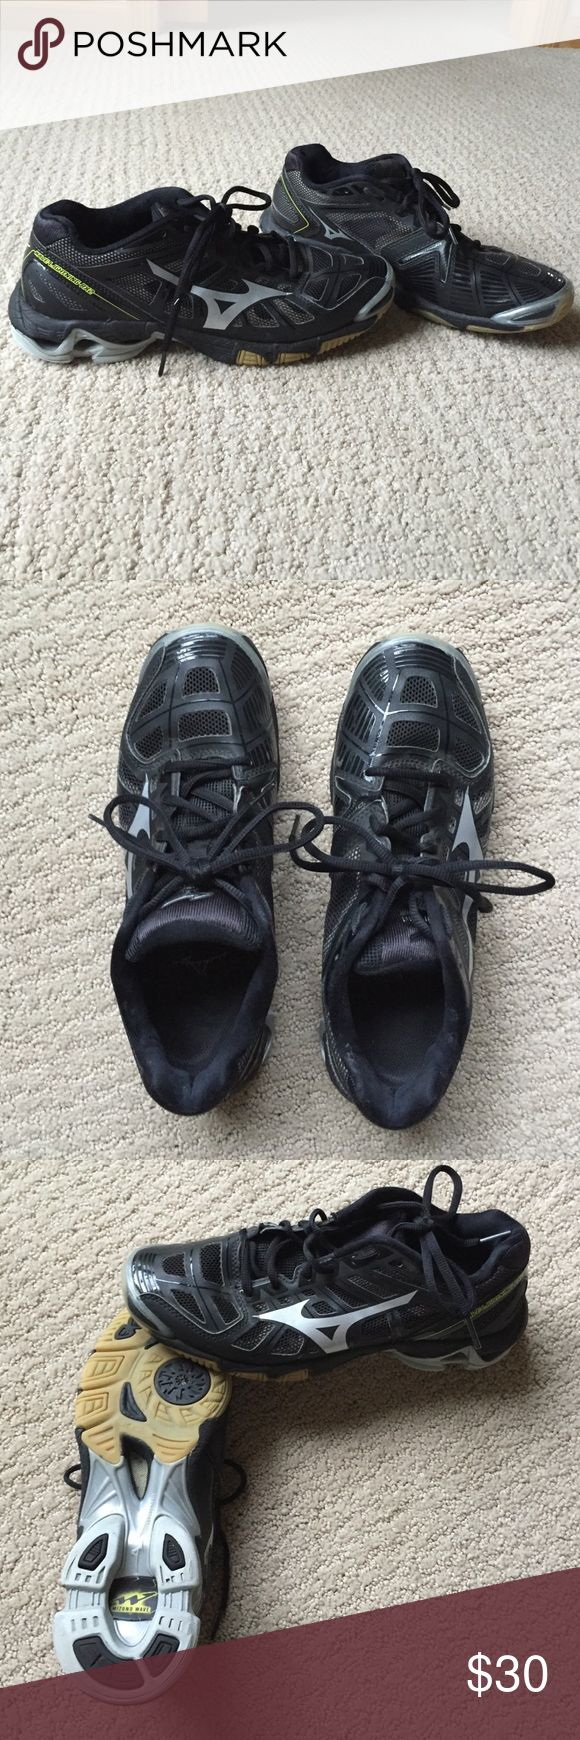 Mizuno Wave Dynamotion Fit Women's Volleyball Shoe Almost brand new, wore them to a few practice before realizing they were a size small. Women's Size 9. Love the brand, have had Mizuno volleyball shoes for years. Black, lightly worn in volleyball shoes. Mizuno Shoes Athletic Shoes